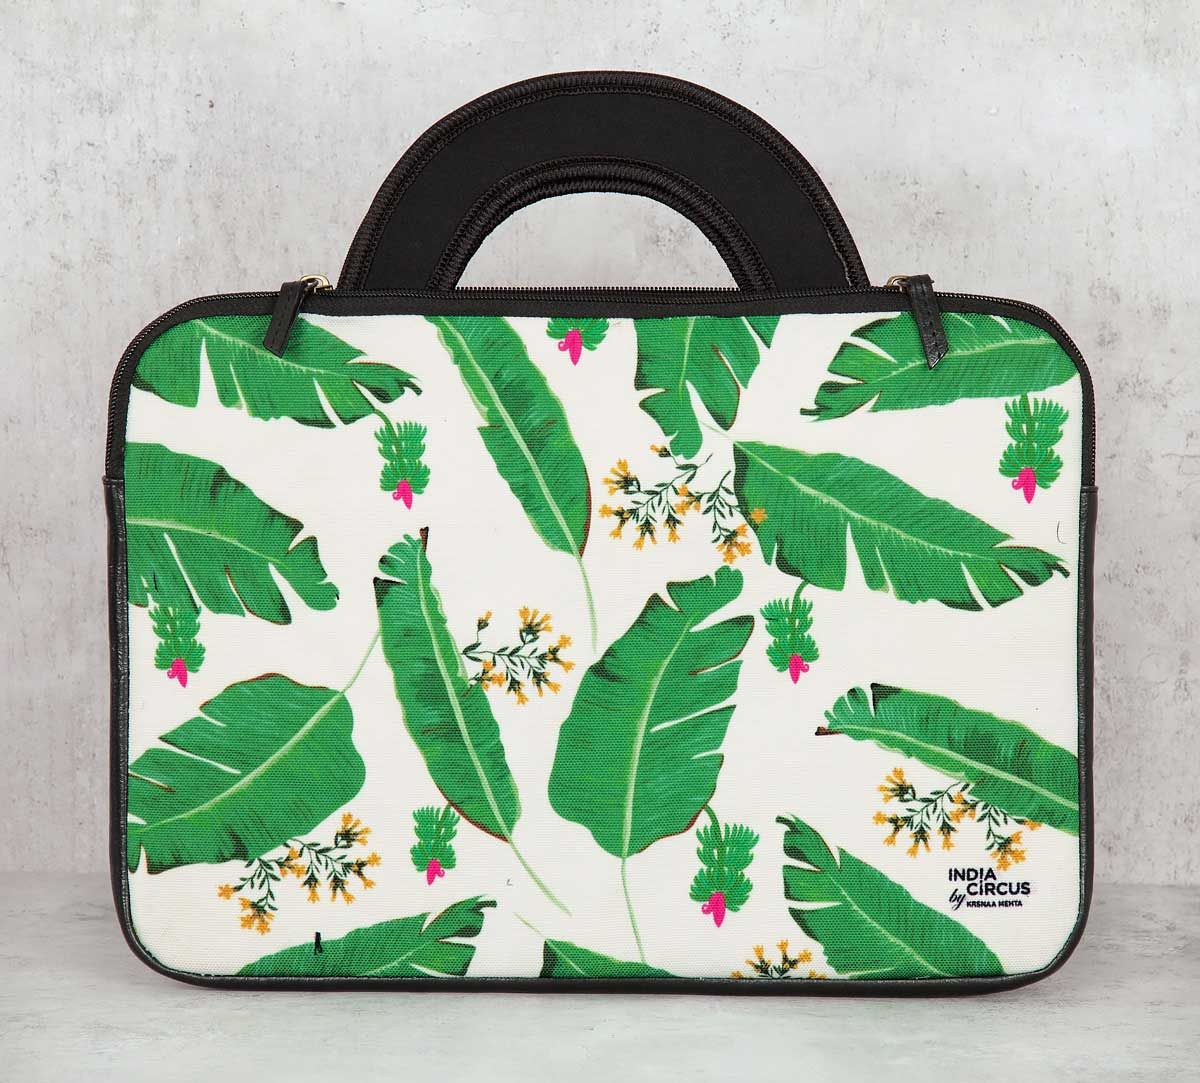 India Circus Banana Leaves 13-inch Laptop Bag